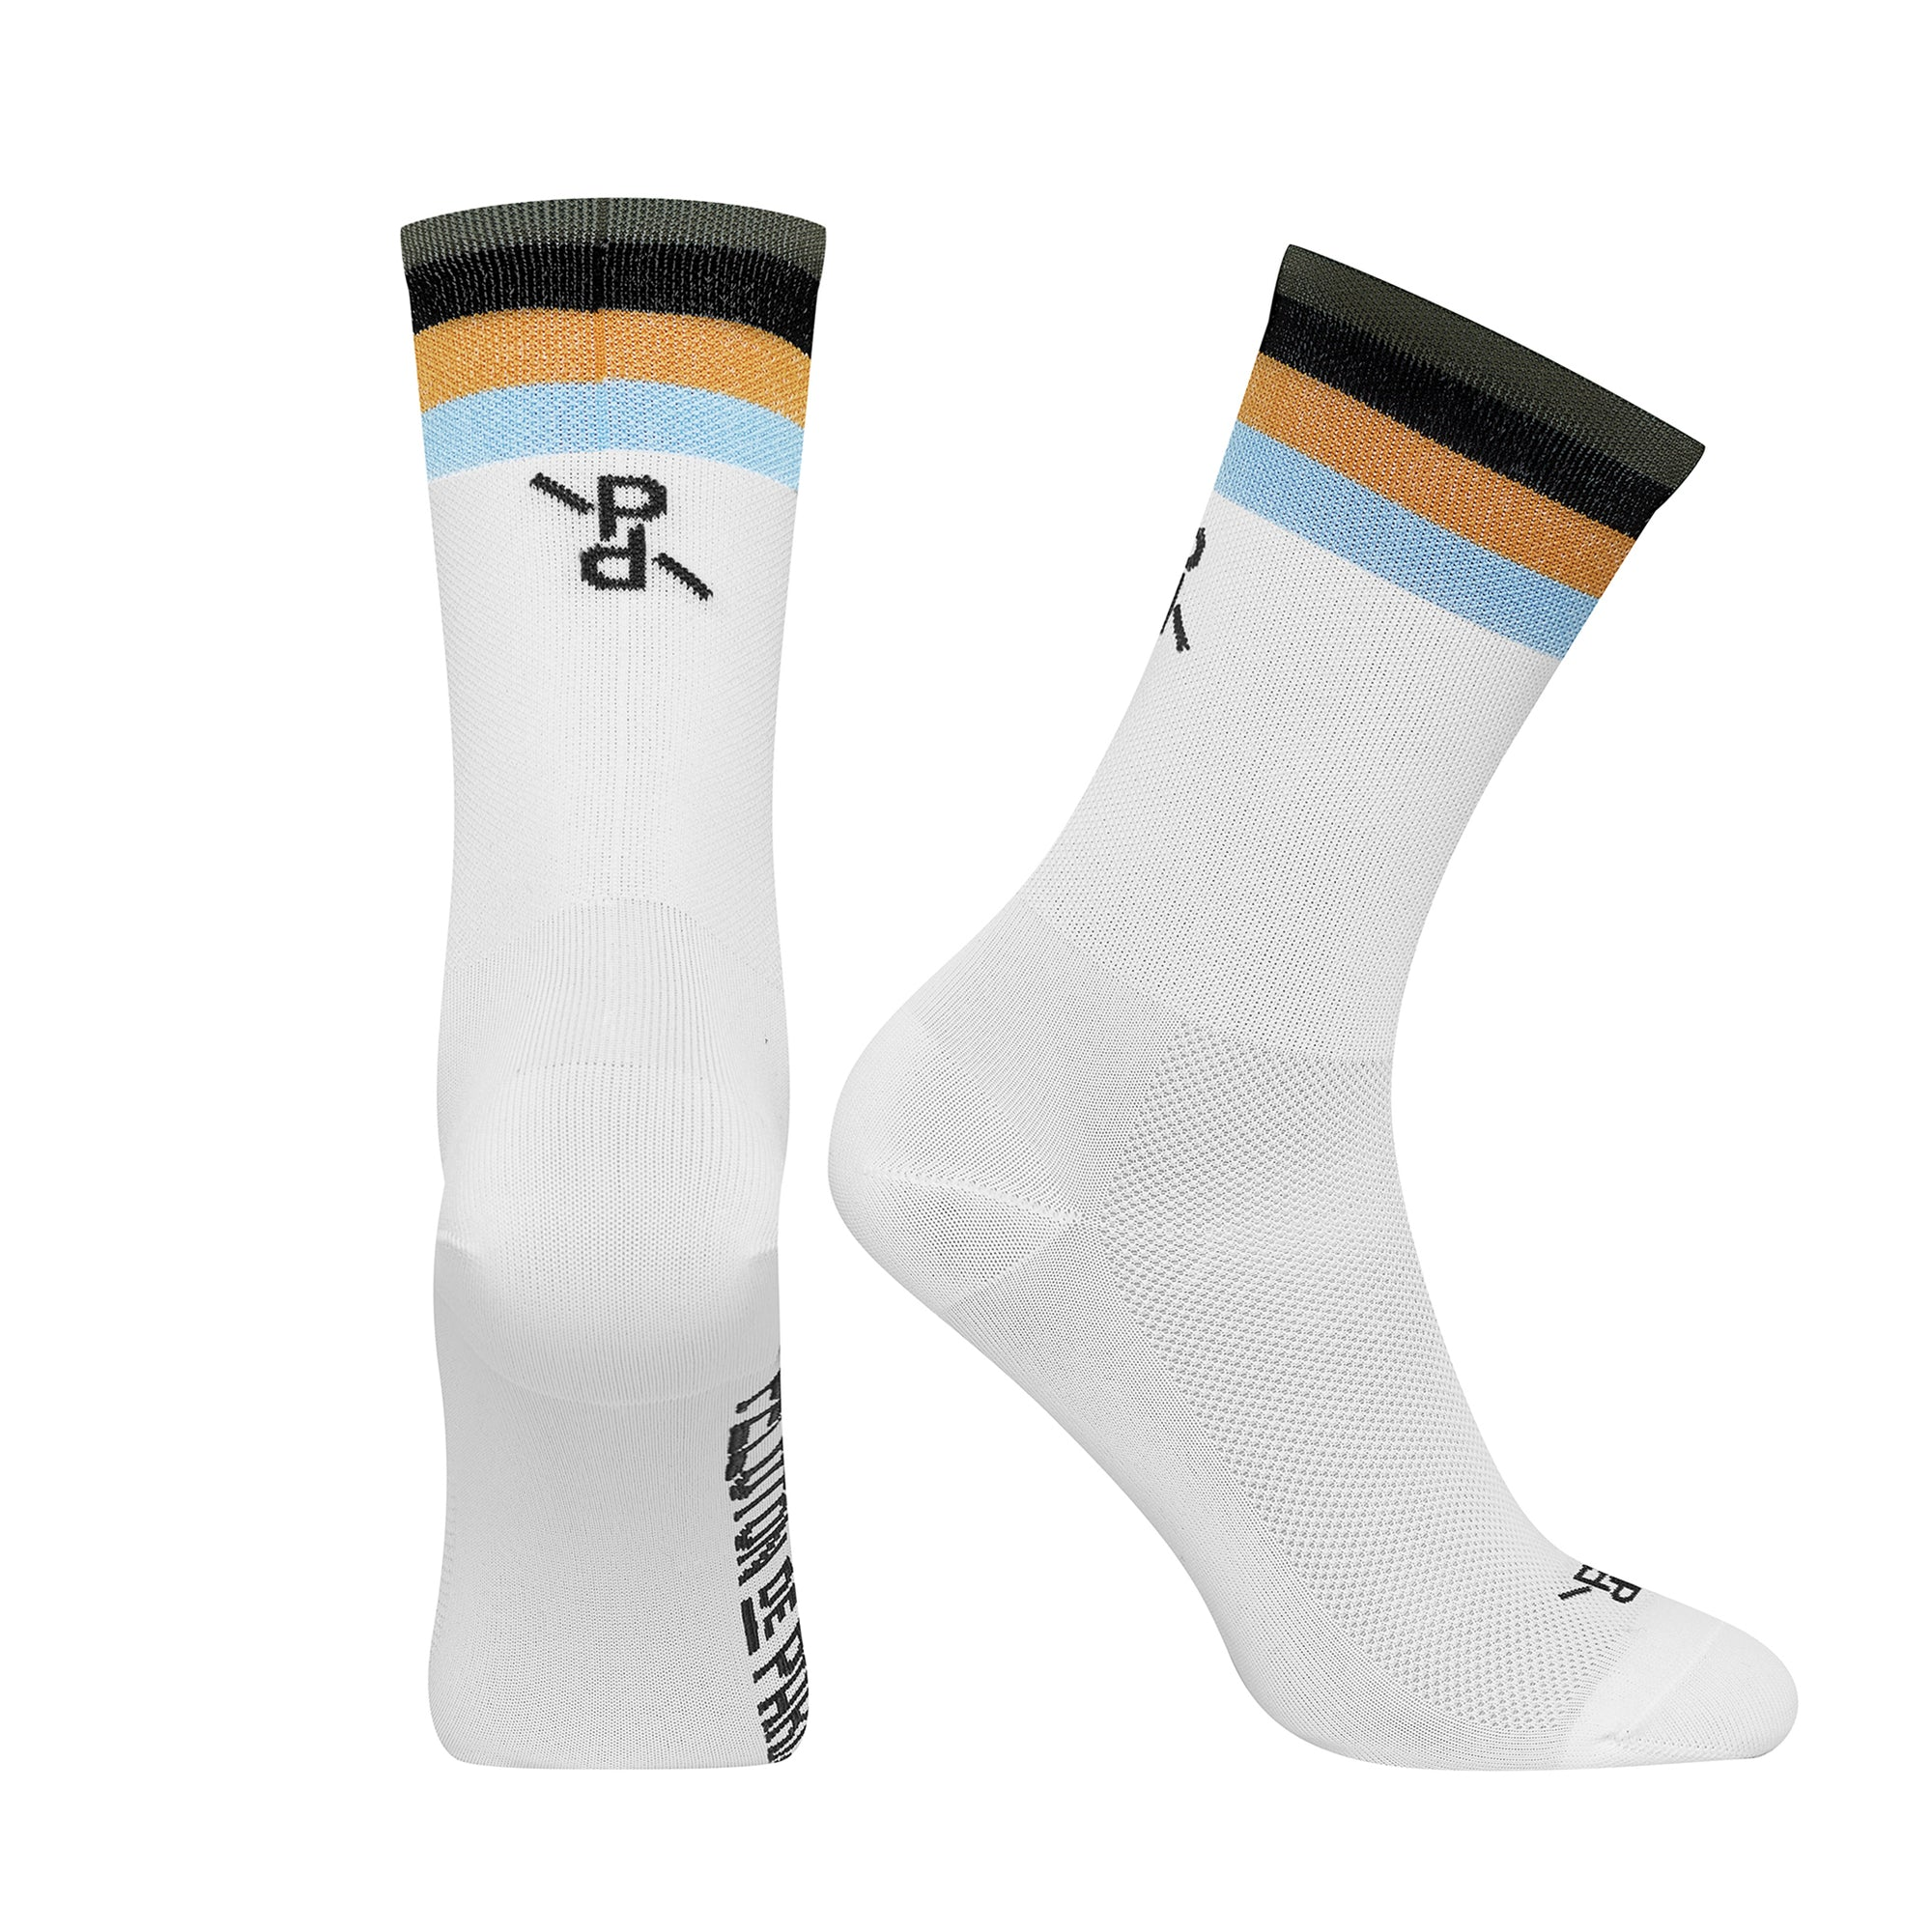 Popsicle White/Black PLTN Socks